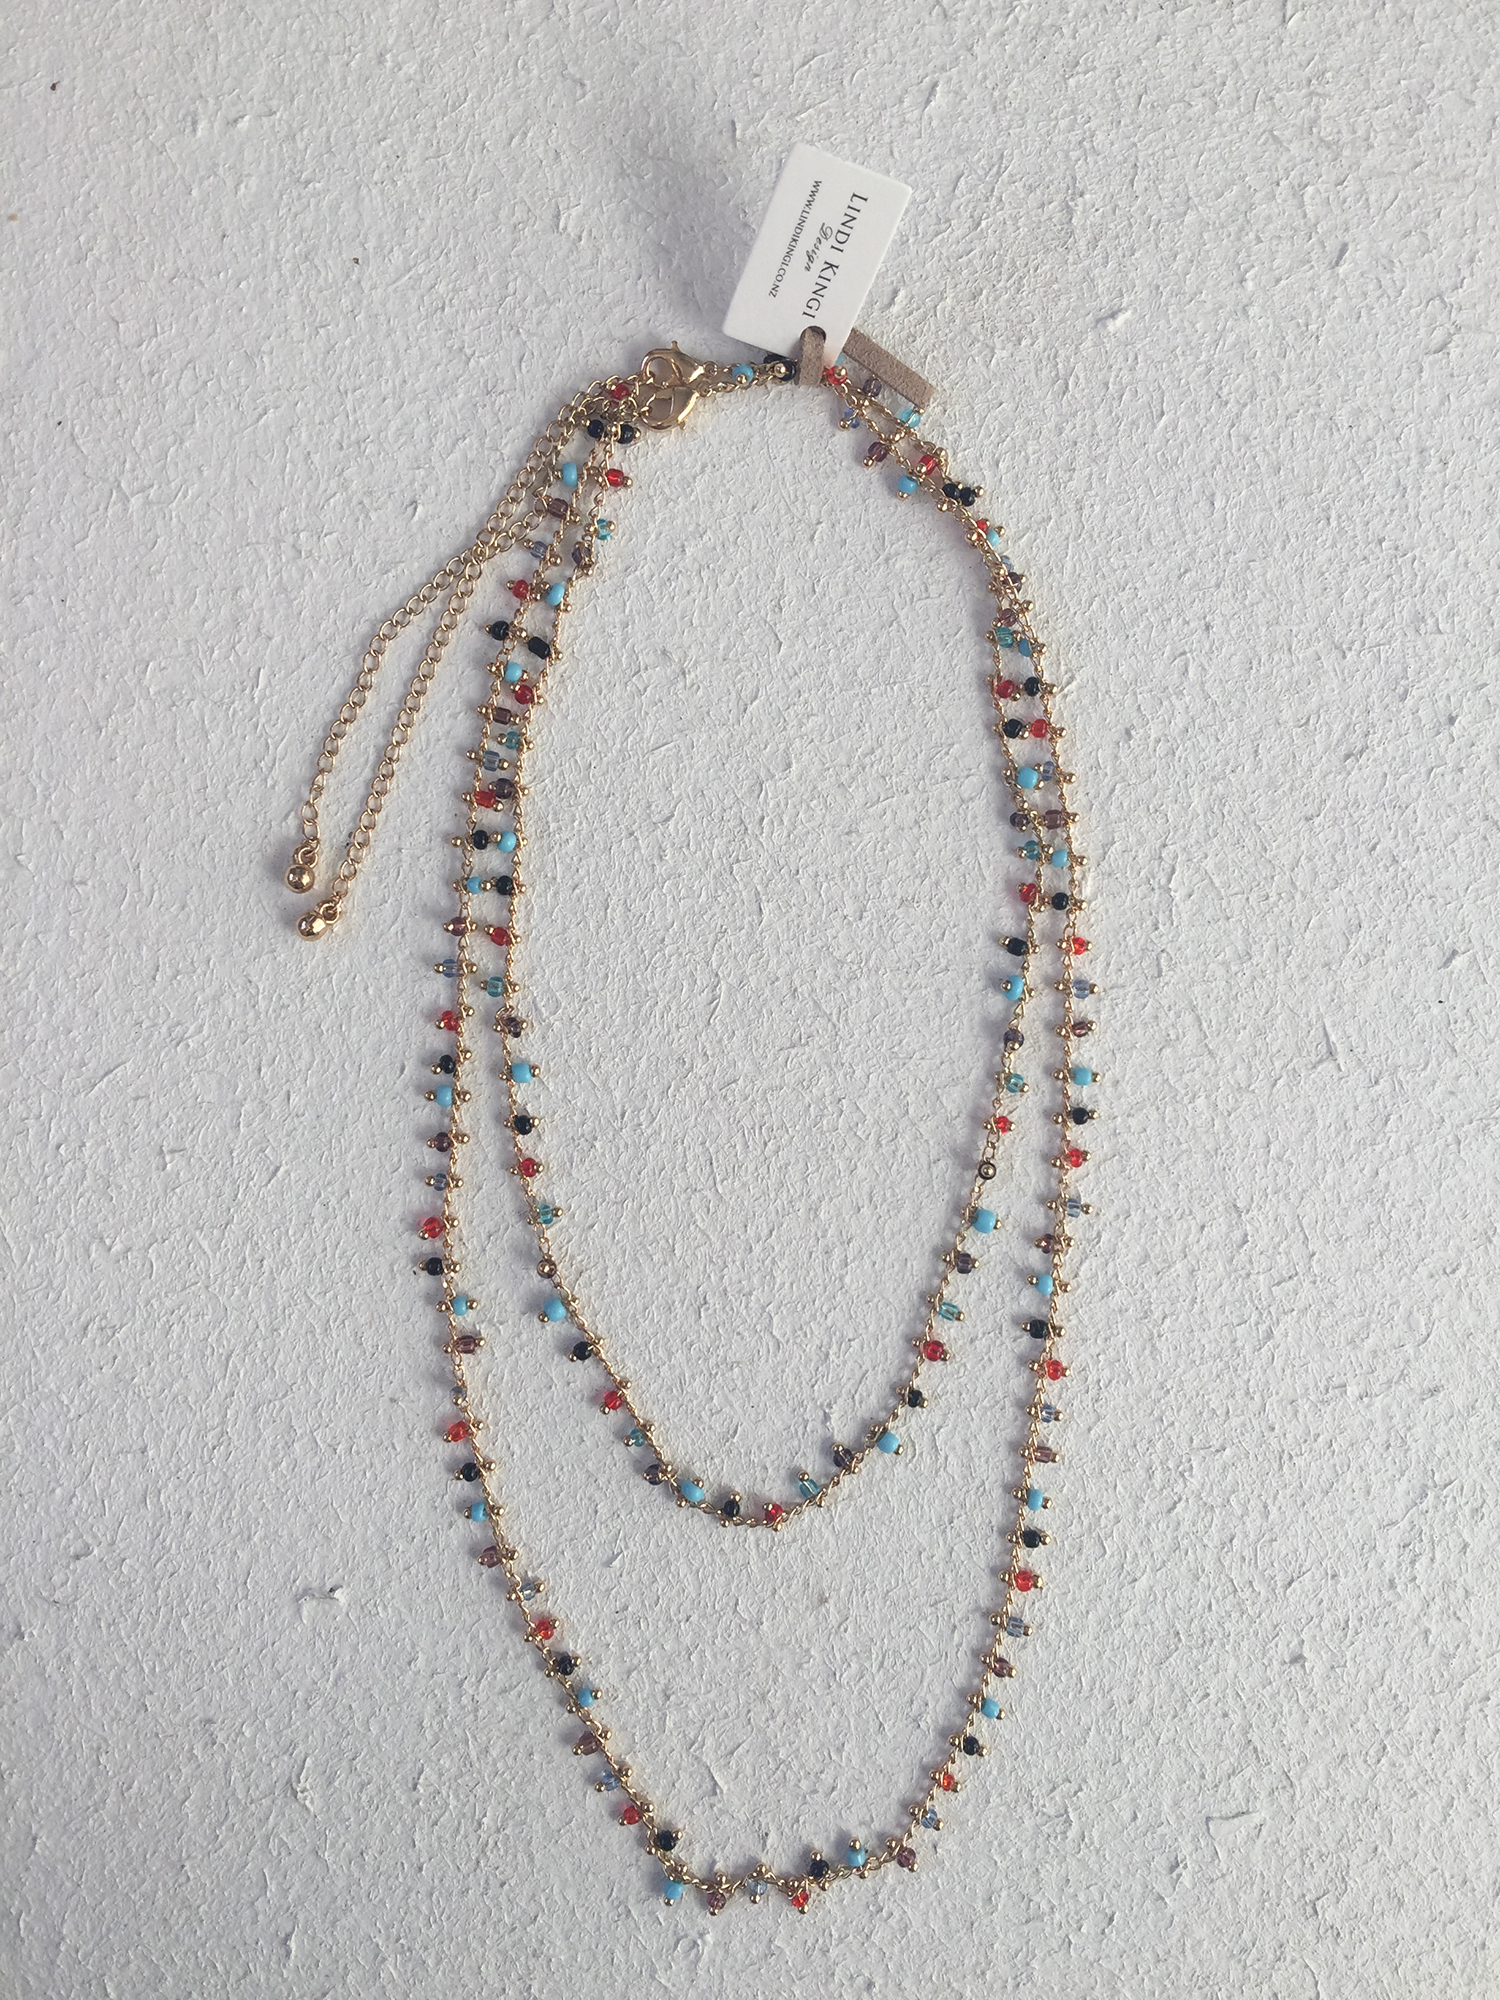 Double Layer Turkish Necklace